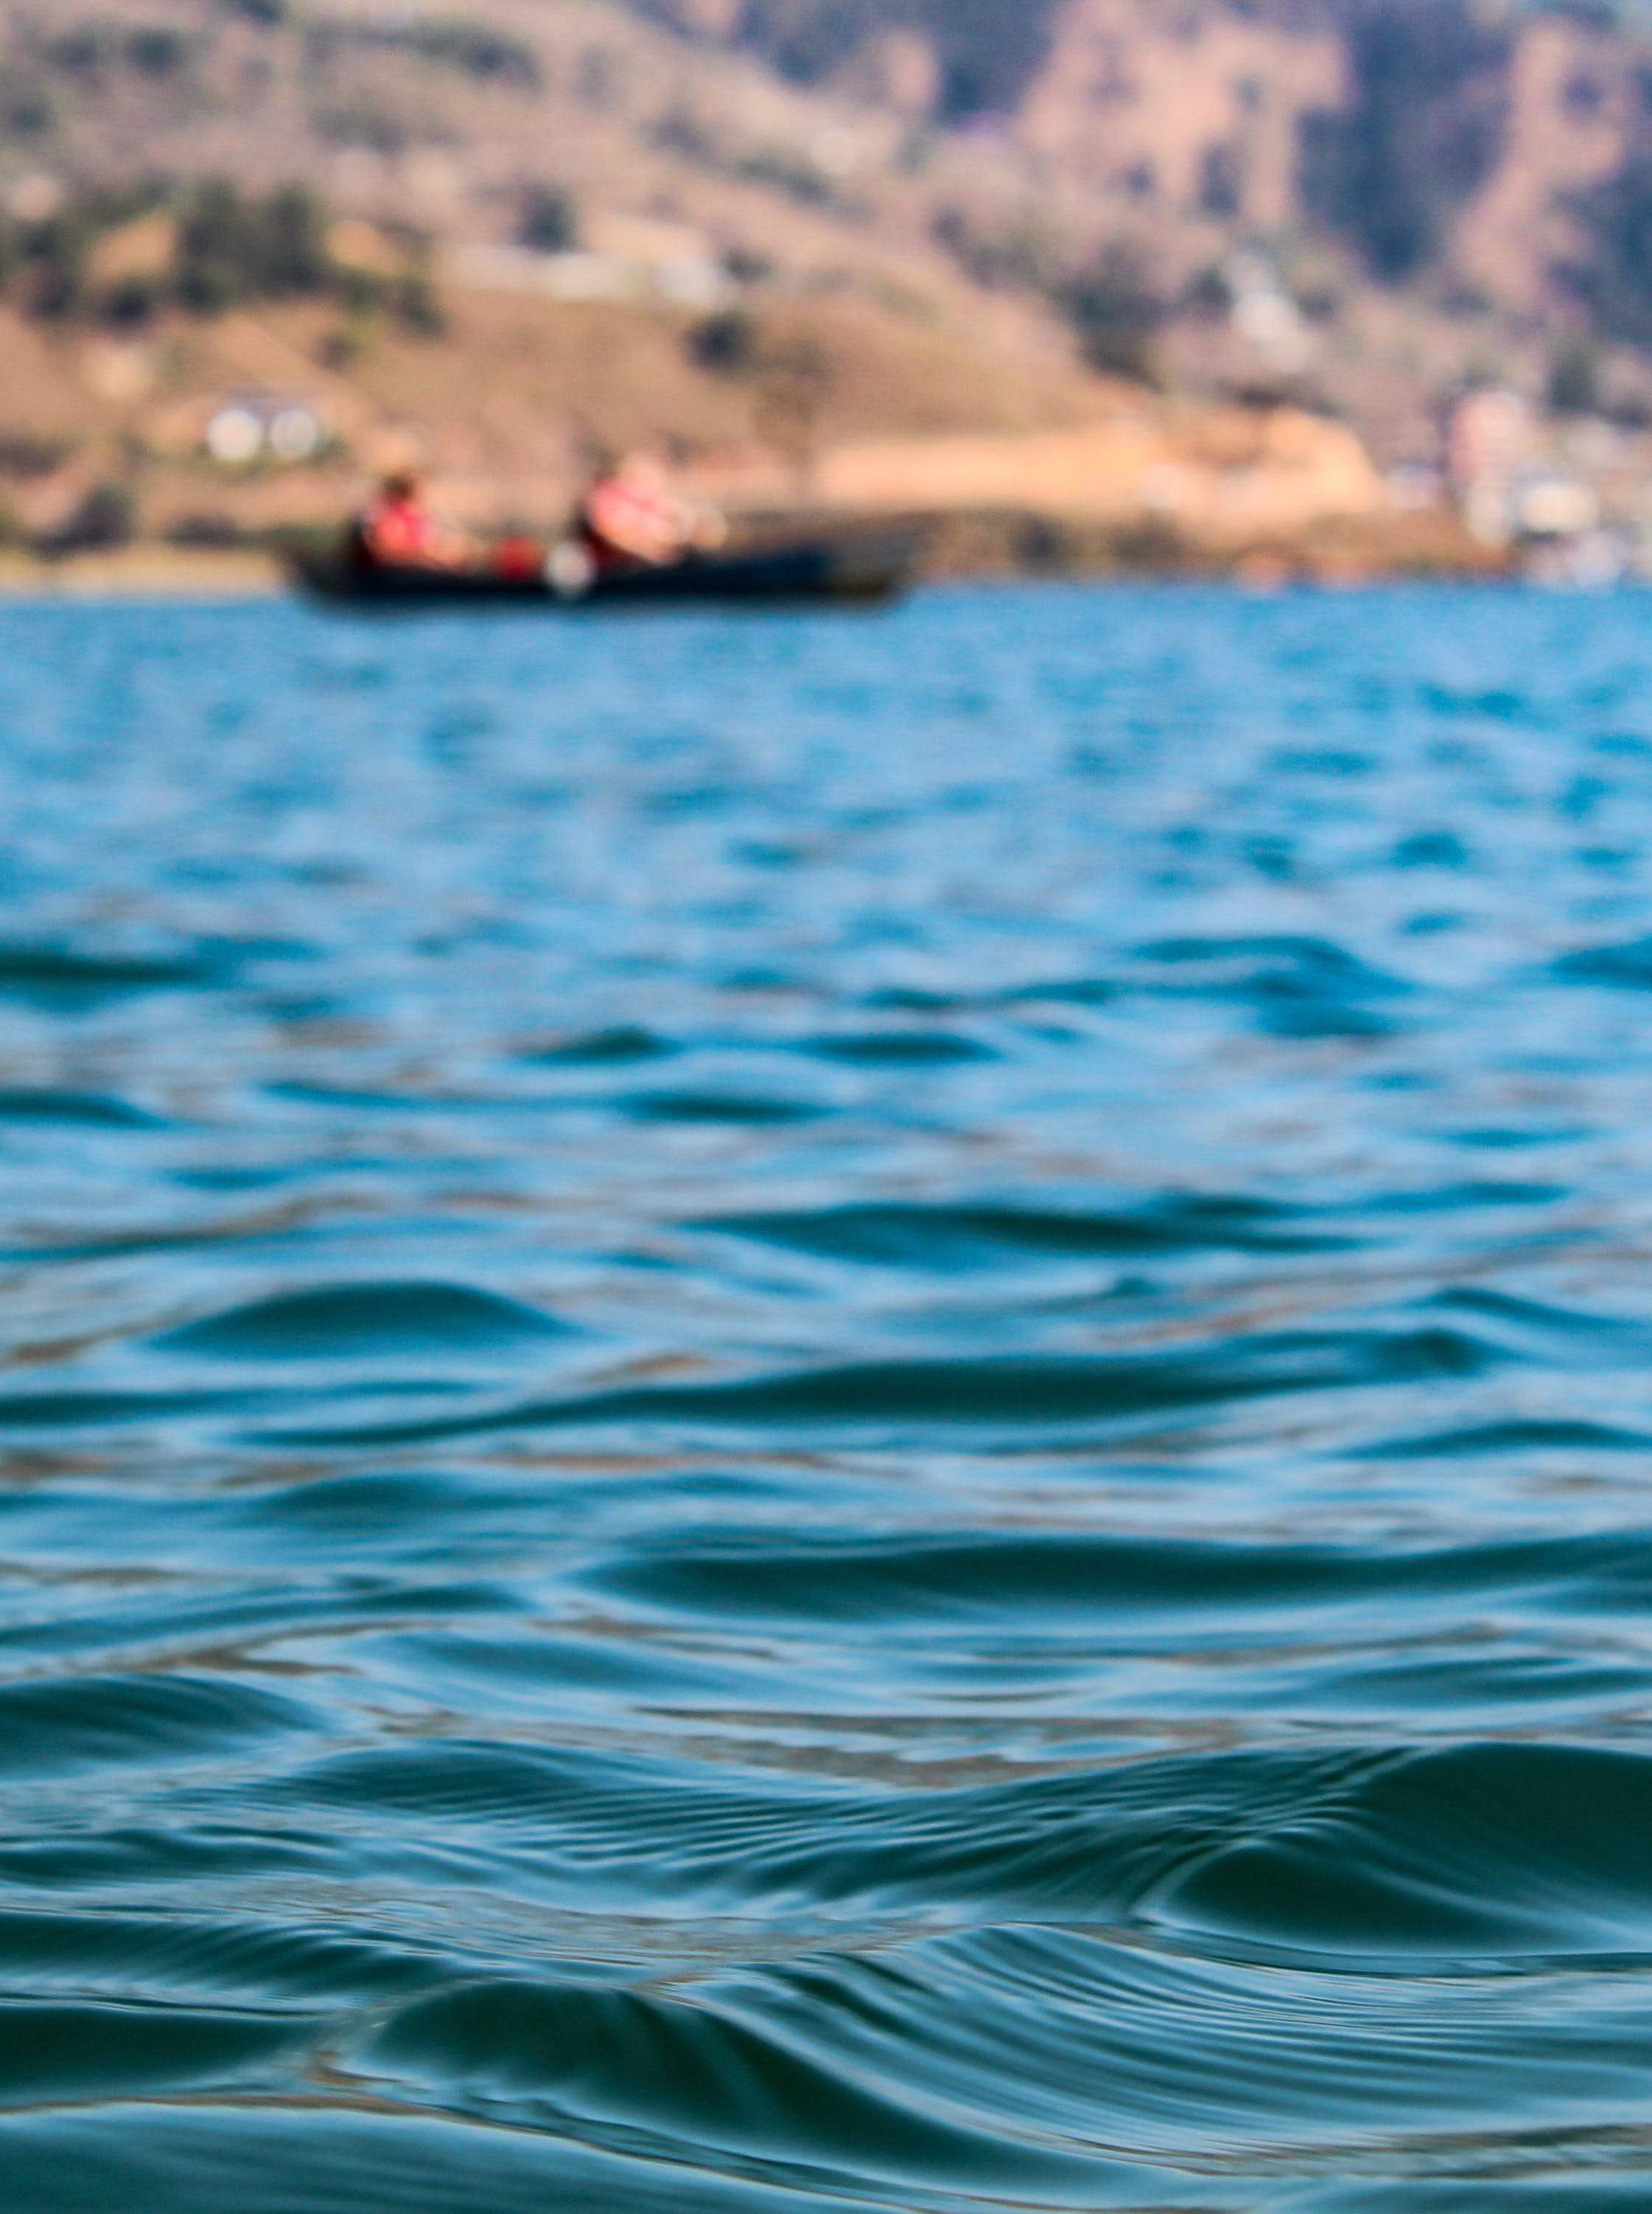 Free stock photo of blue water, boat, clear water, hillside